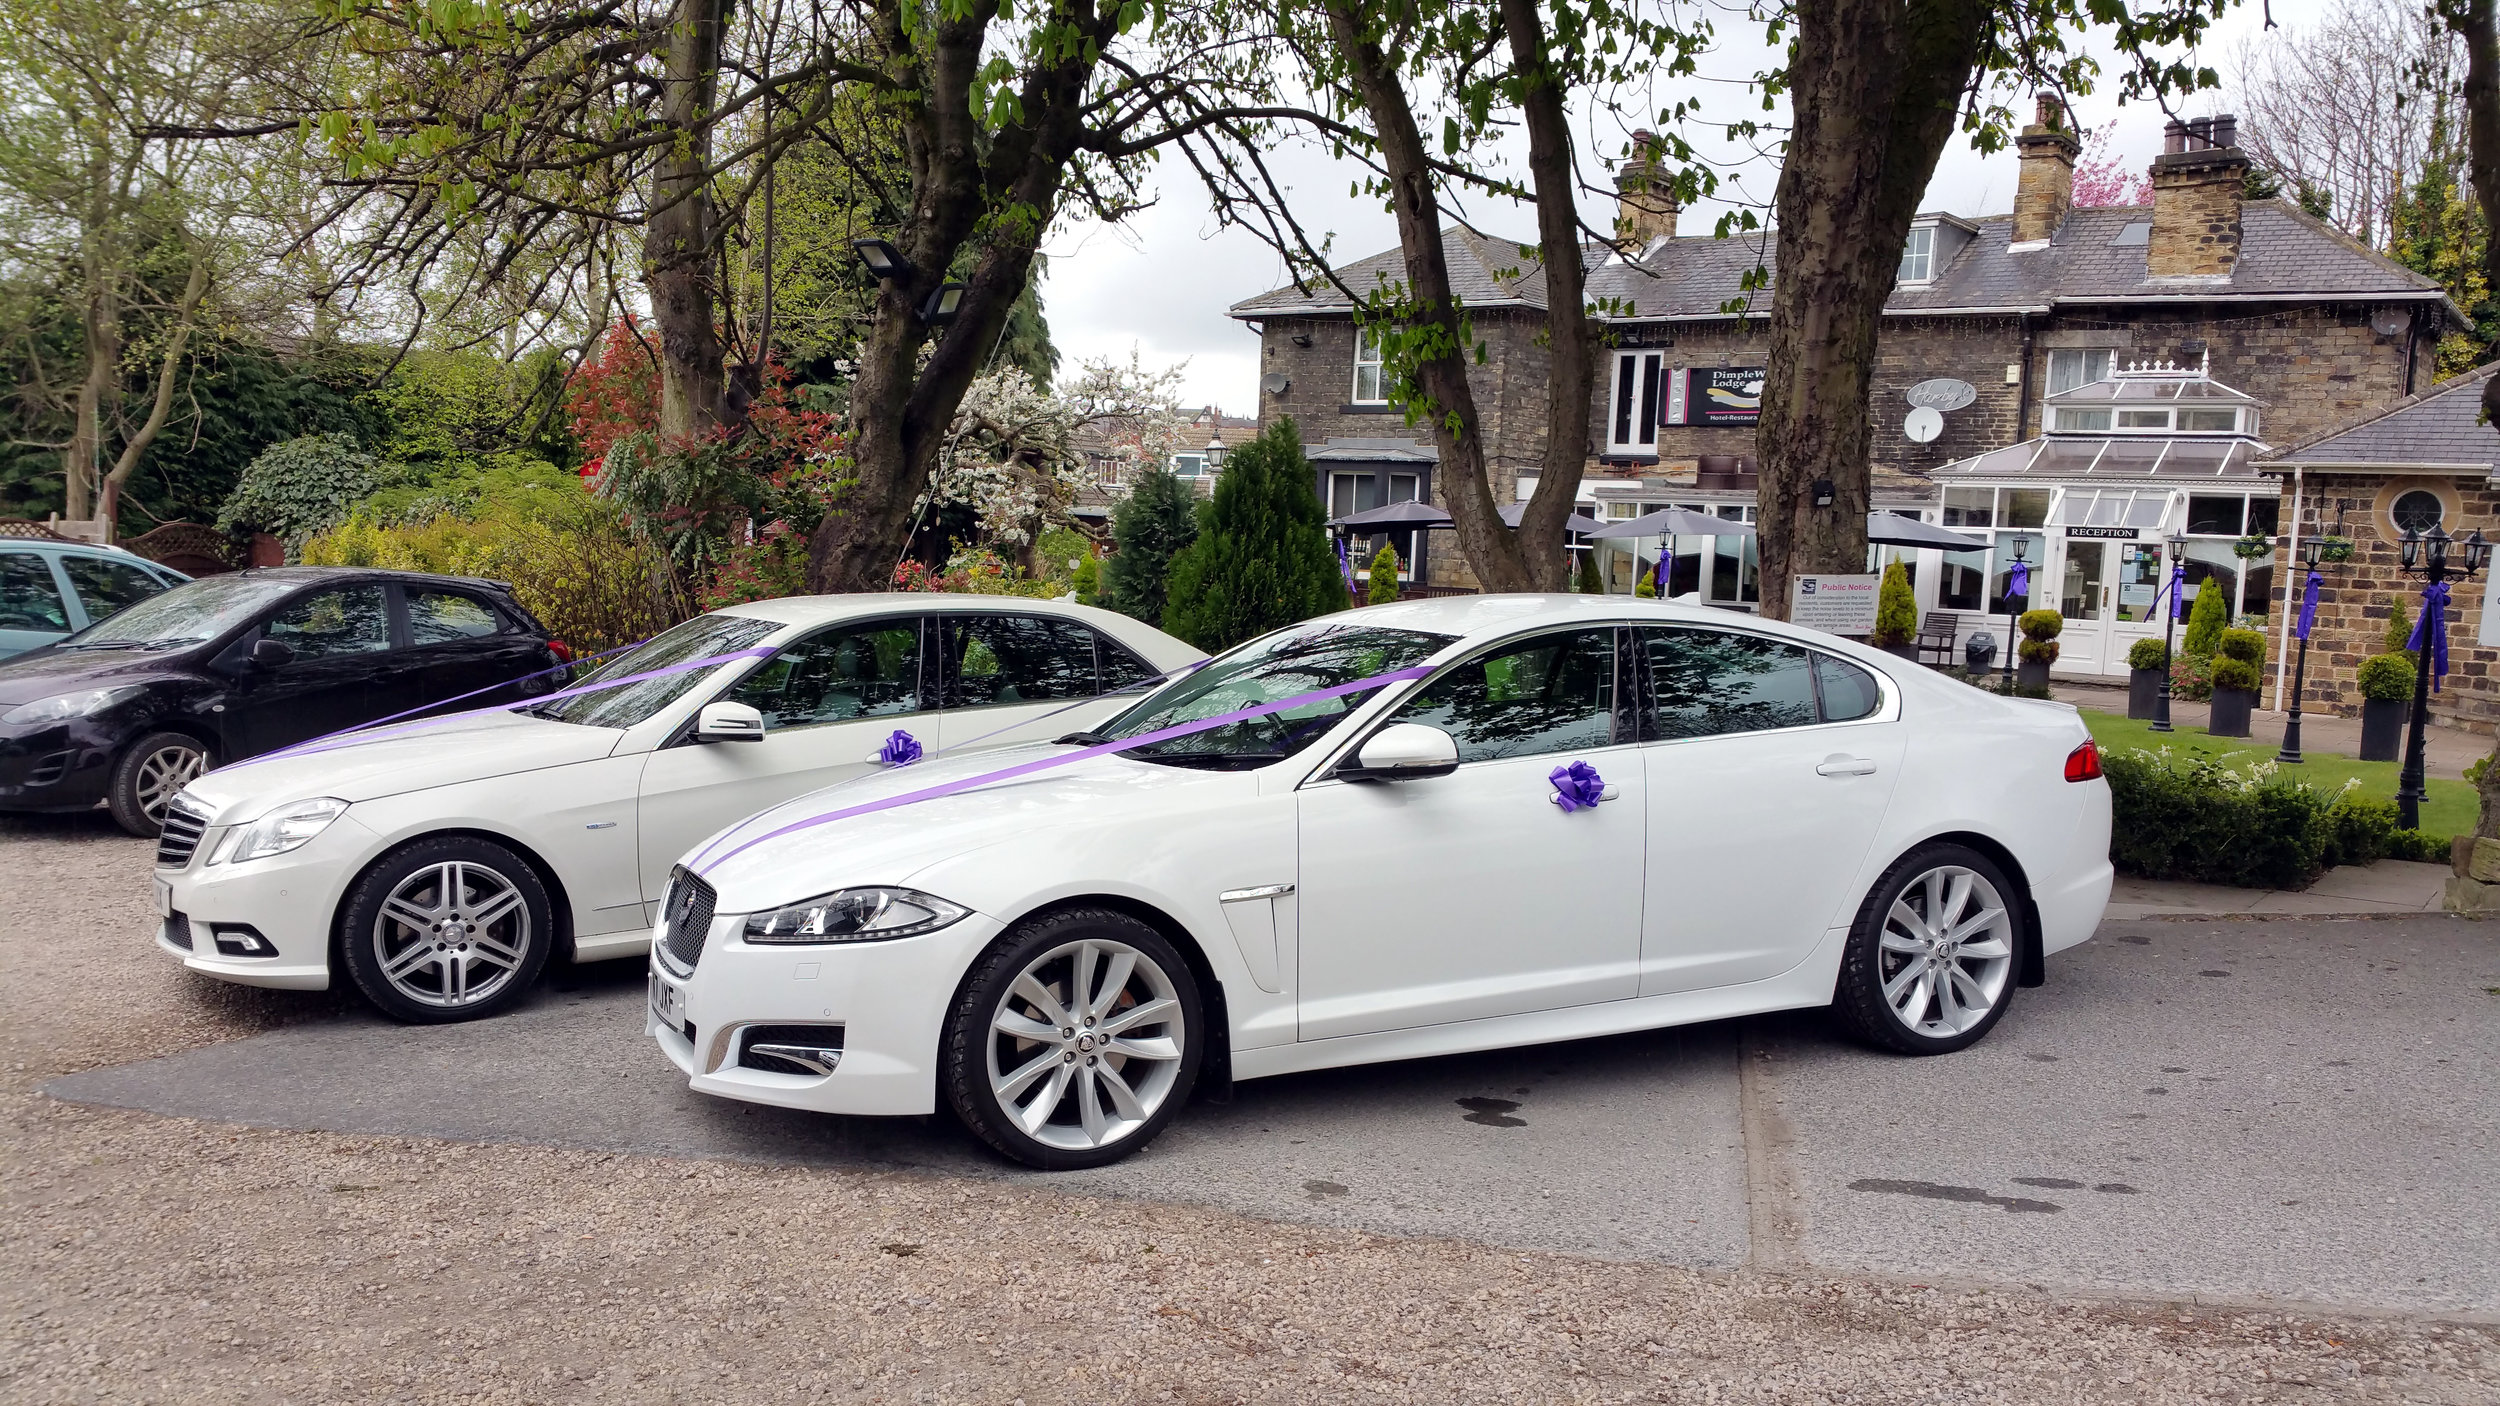 White Mercedes and Jaguar Wedding Cars Yorkshire.jpg